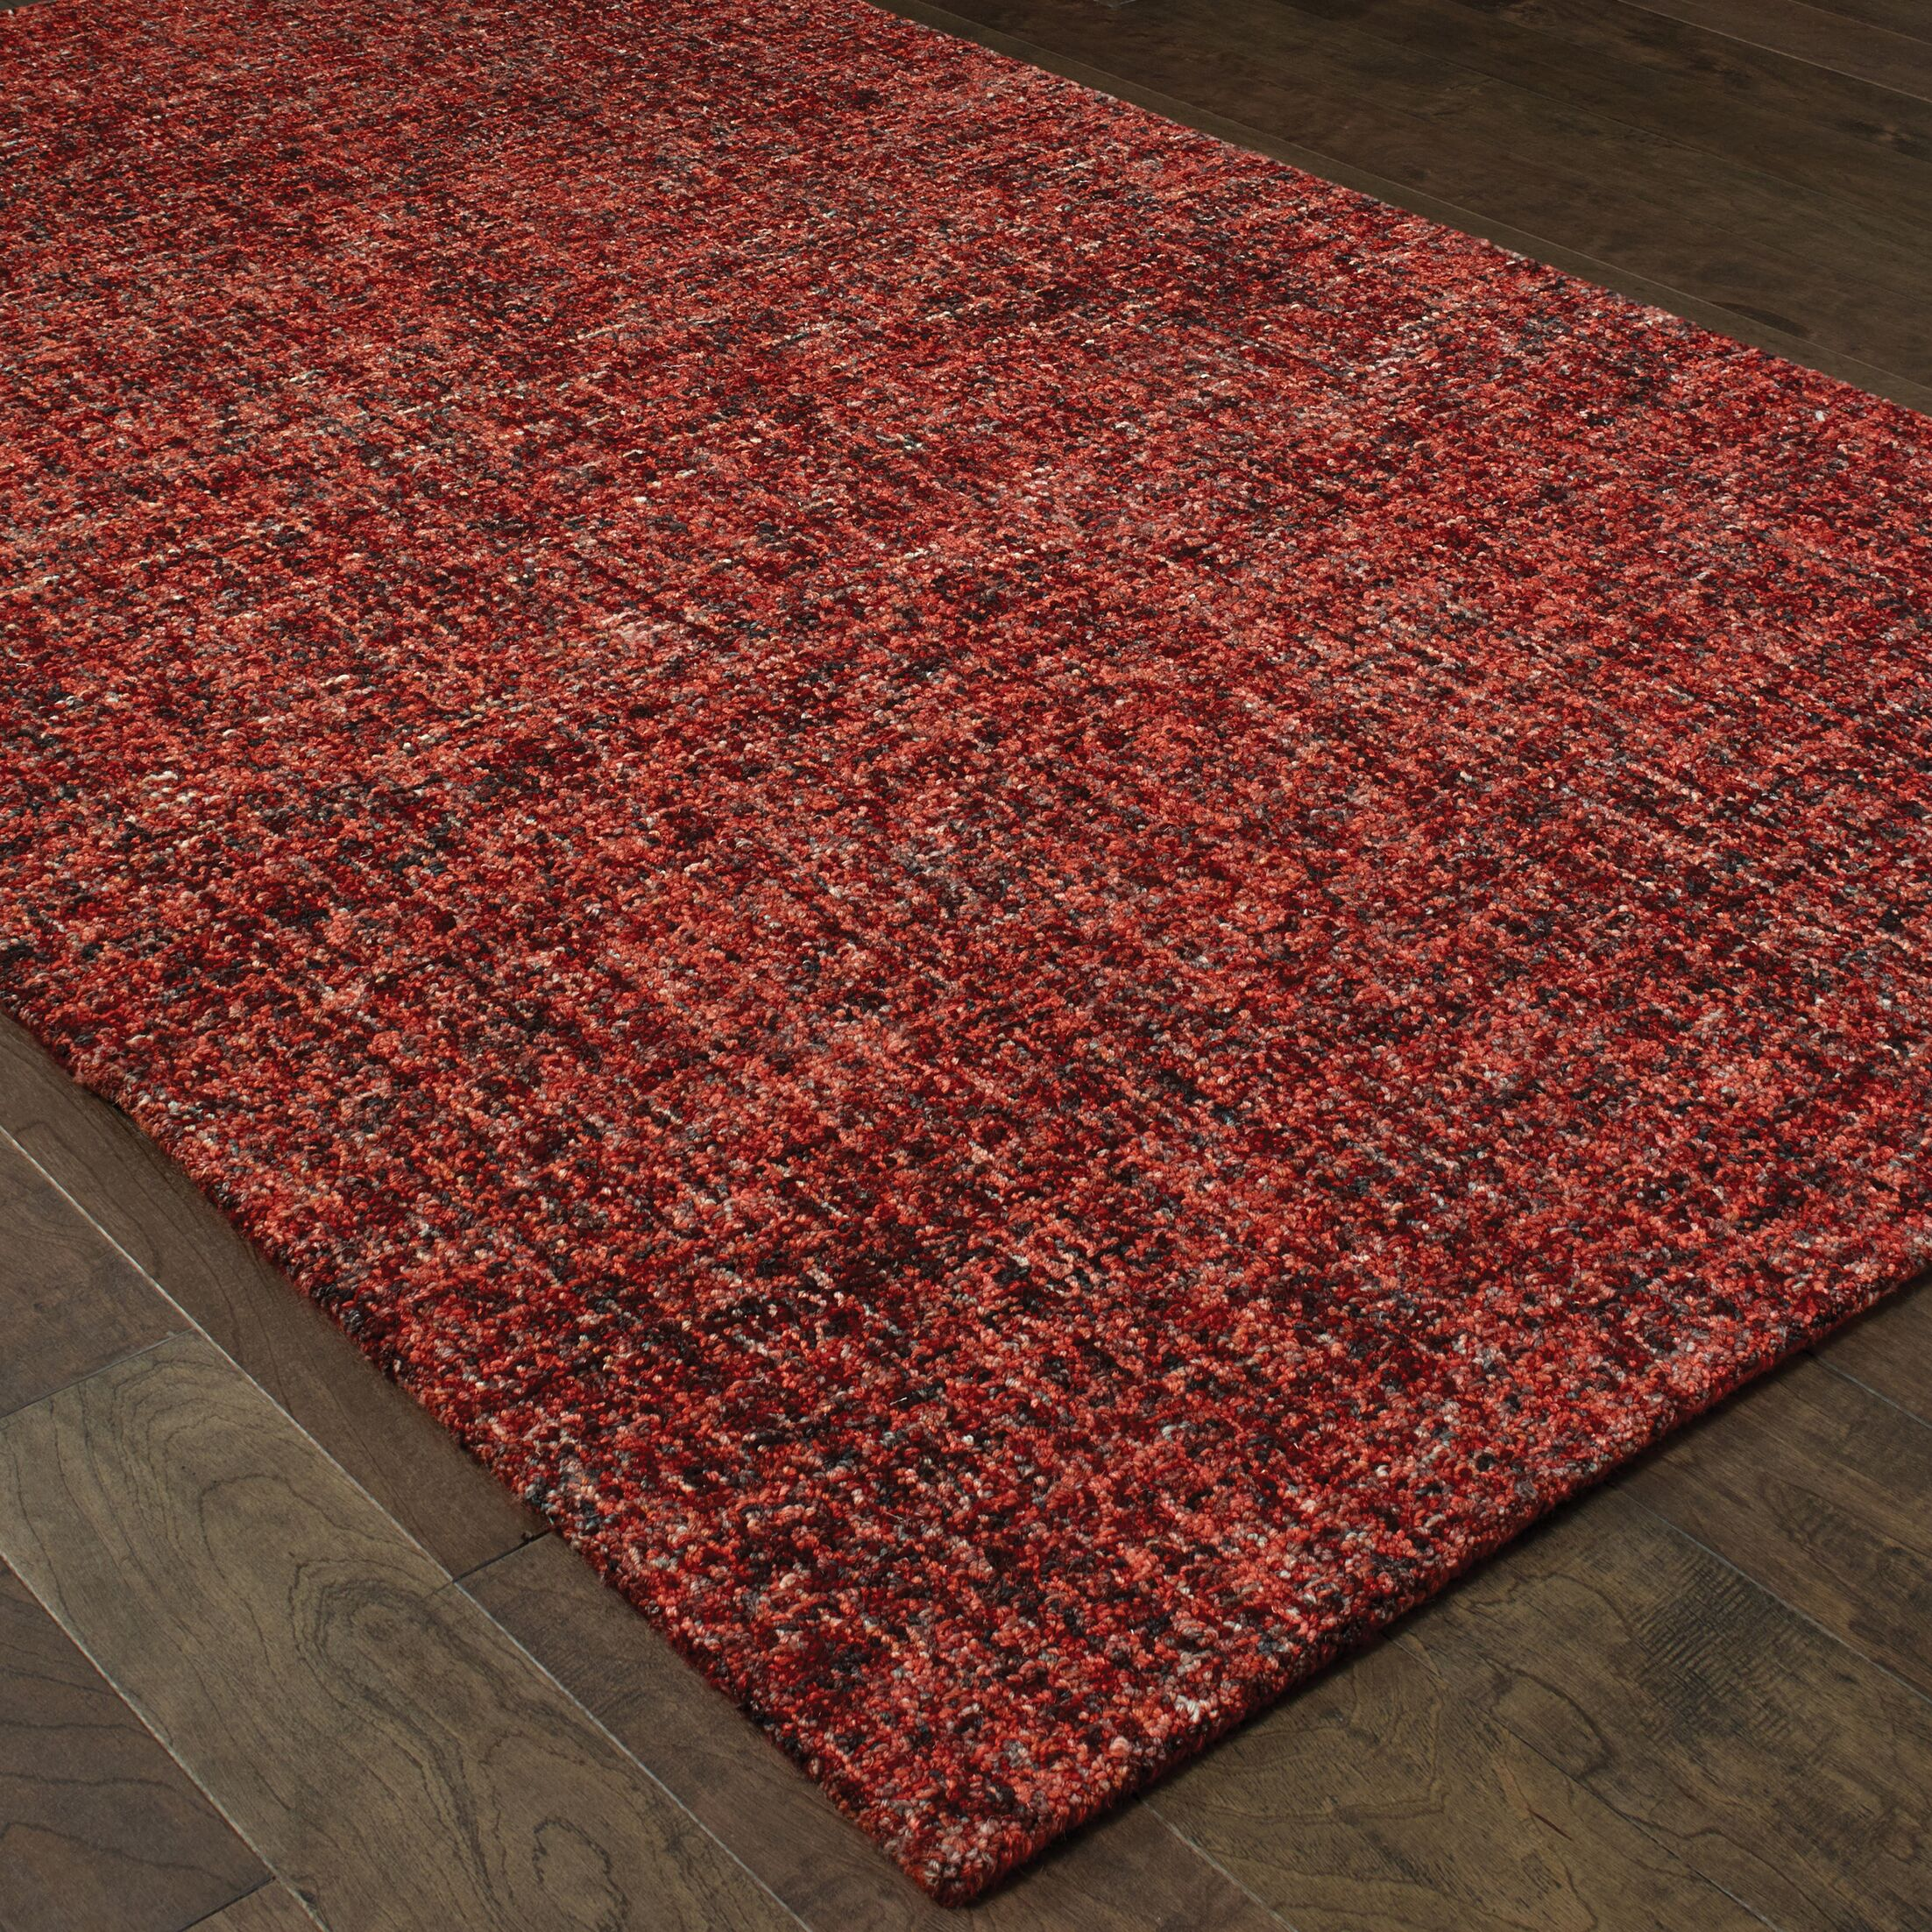 Laguerre Warm Boucle Hand-Hooked Wool Red Area Rug Rug Size: Rectangle 10' x 13'